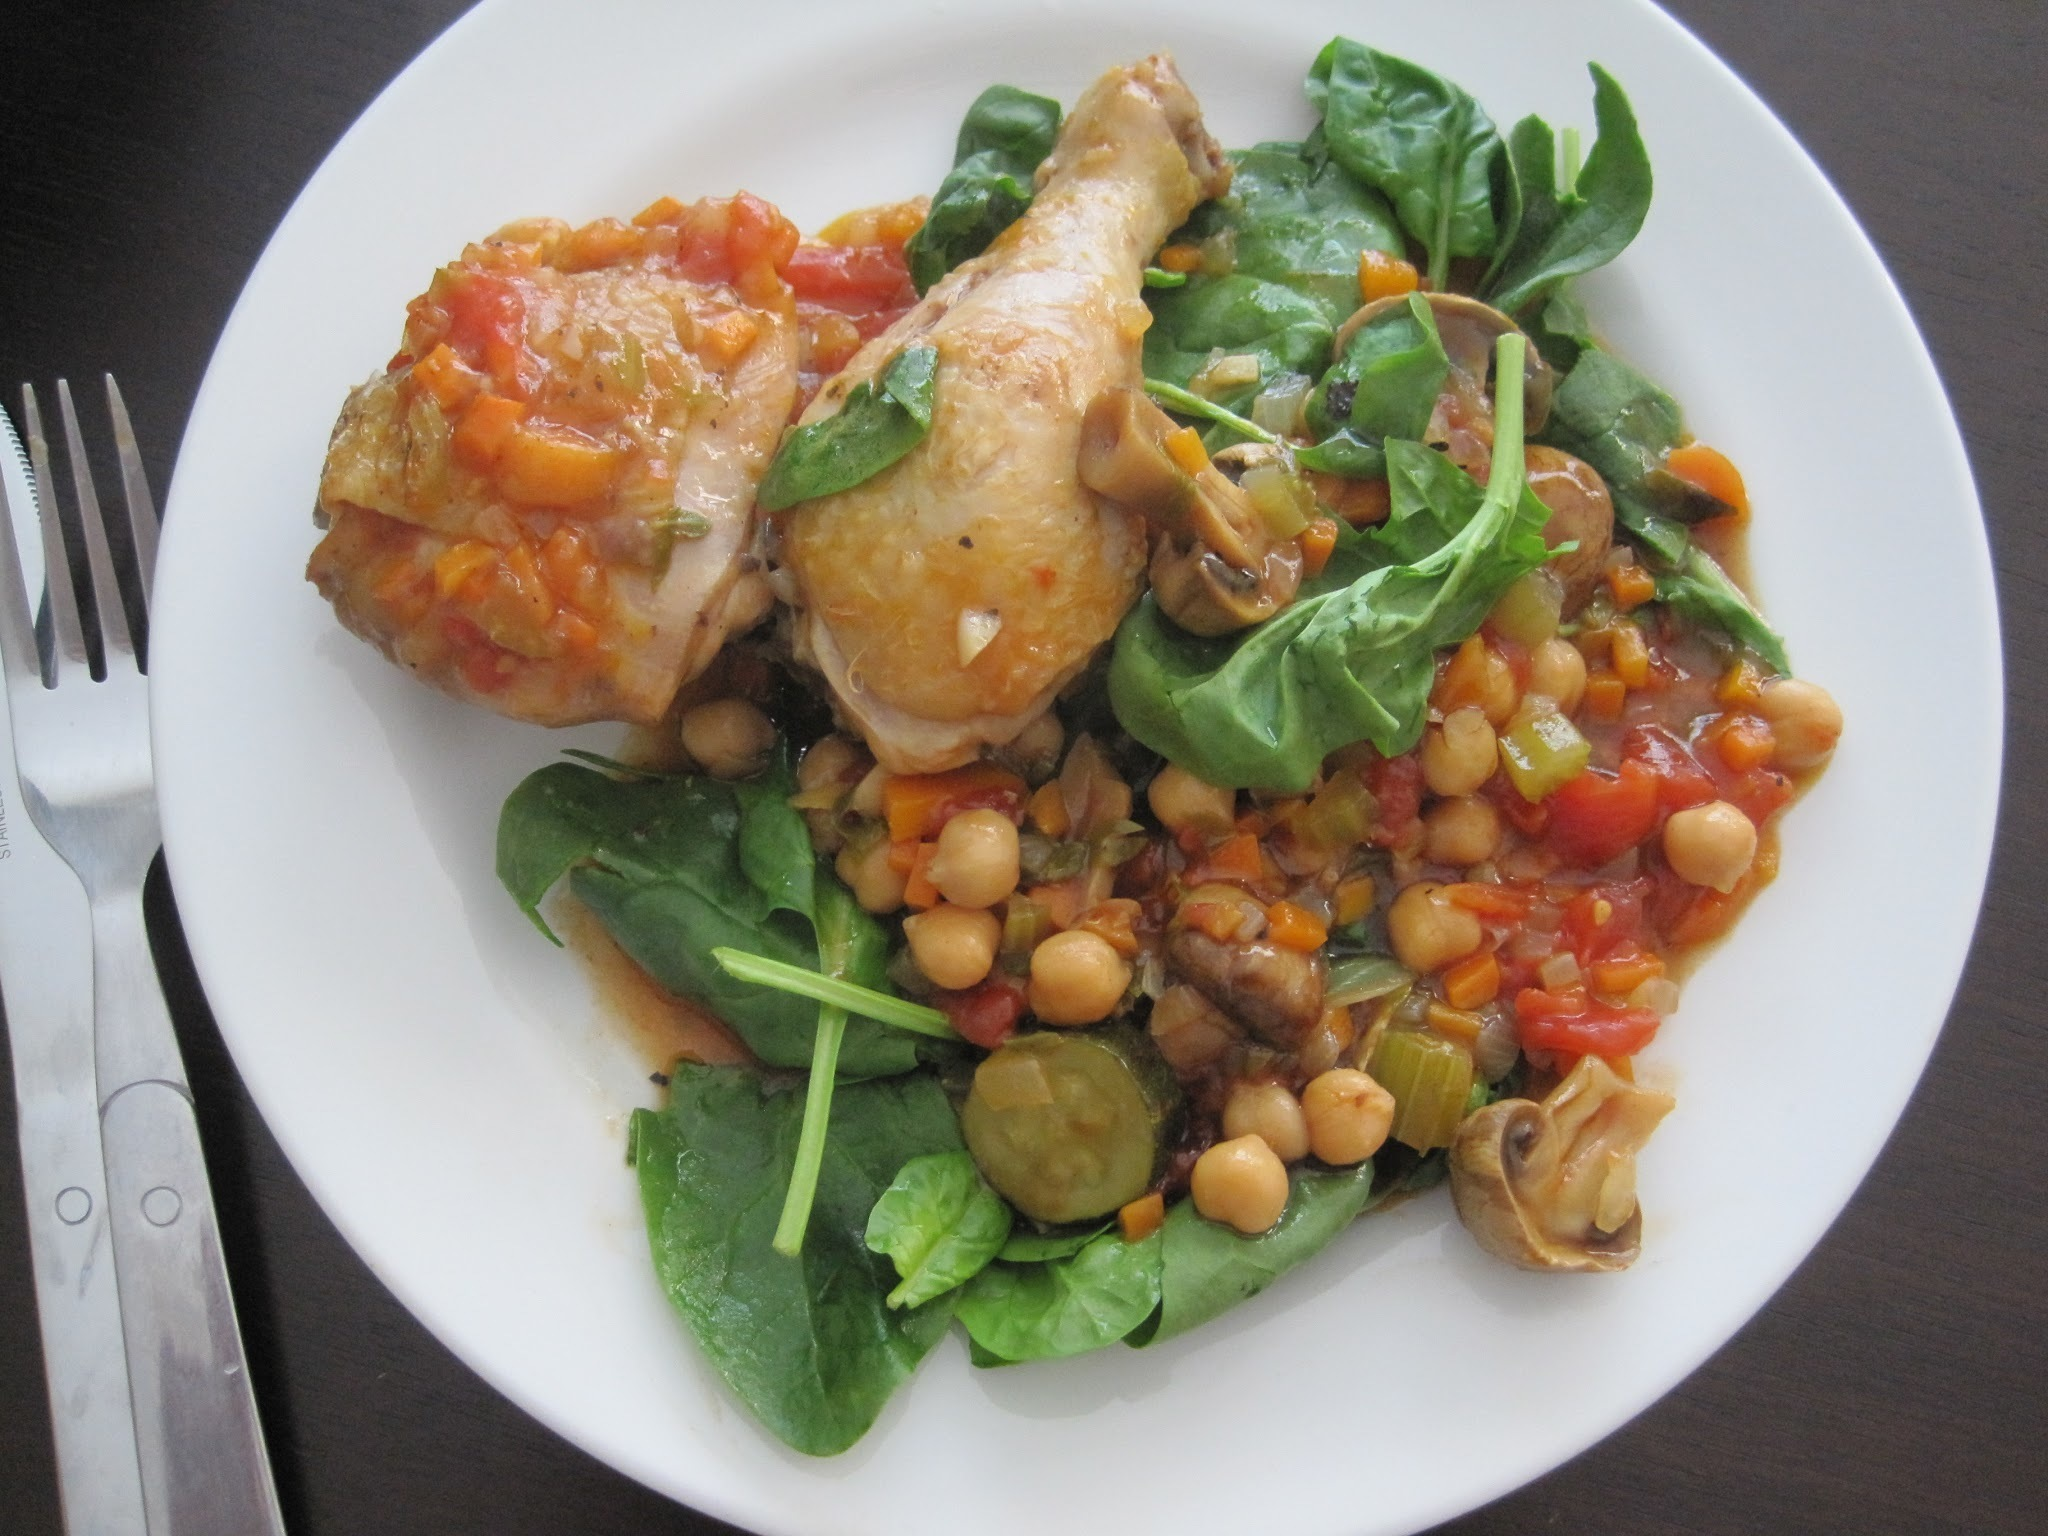 Tomato, Chicken and Chickpea Casserole